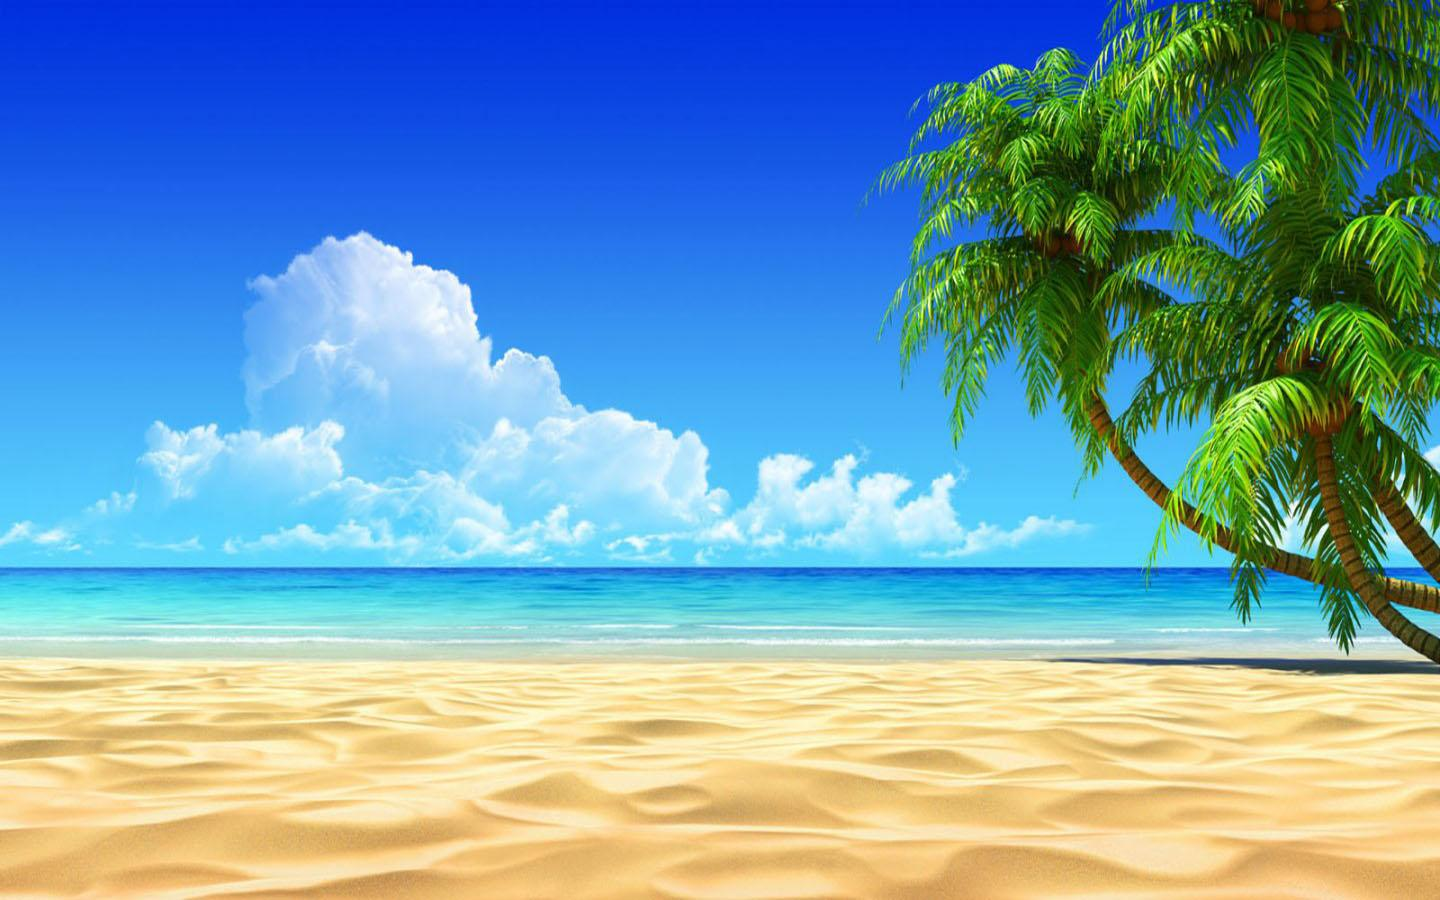 Summer Beach Wallpaper - Android Apps on Google Play